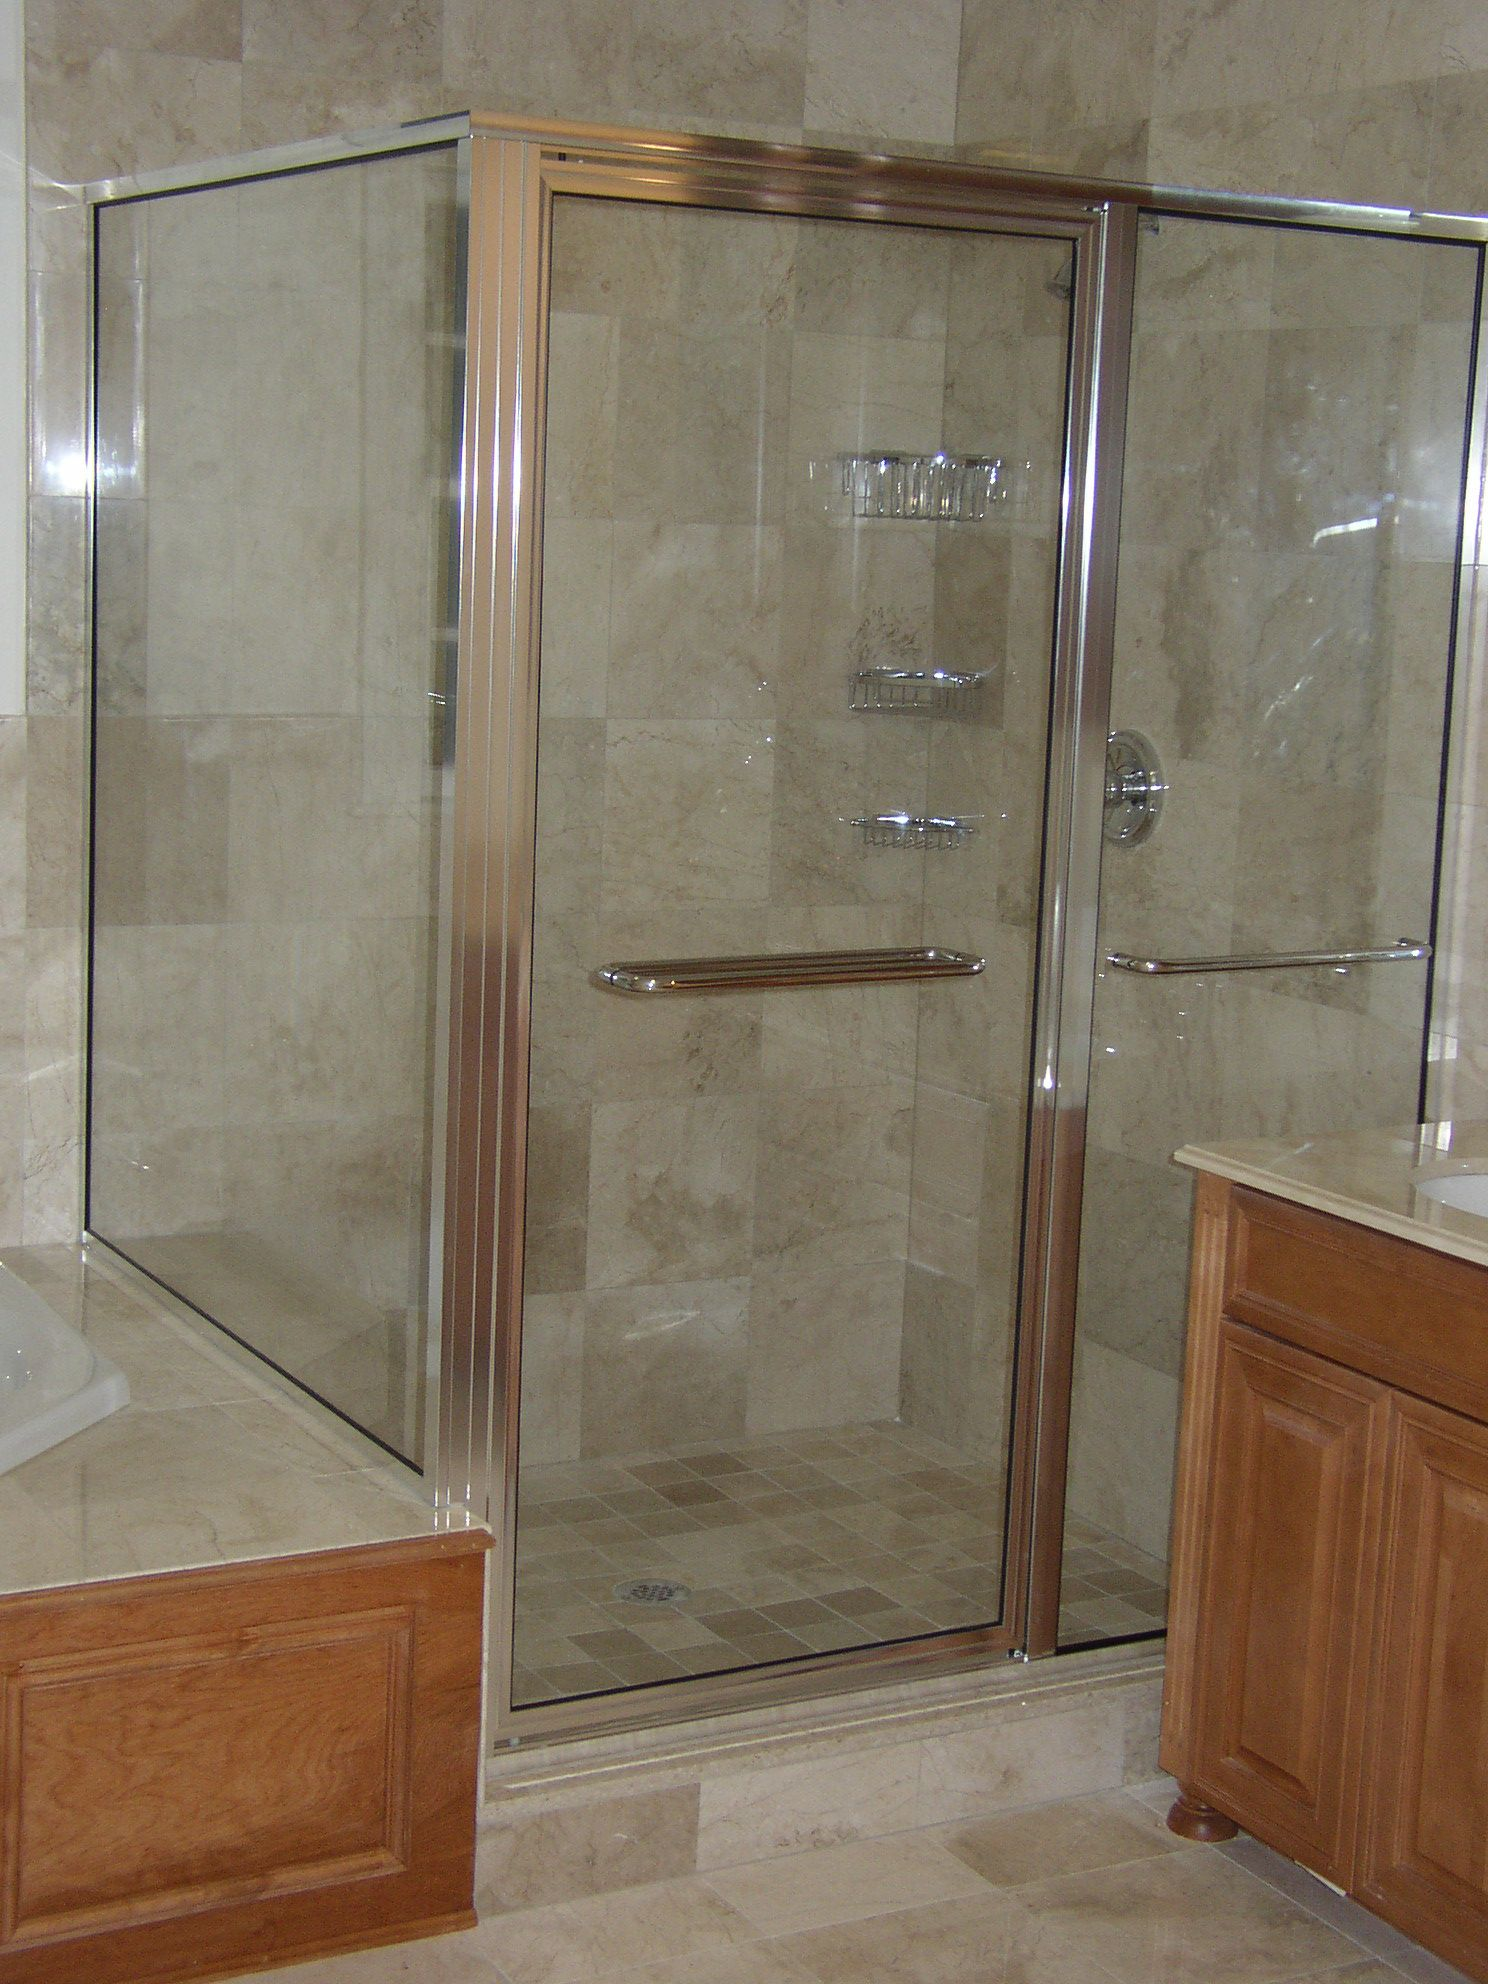 Buying Alumax Shower Doors And What To Consider Ideas 4 Homes Bathroom Shower Doors Shower Doors Shower Enclosure